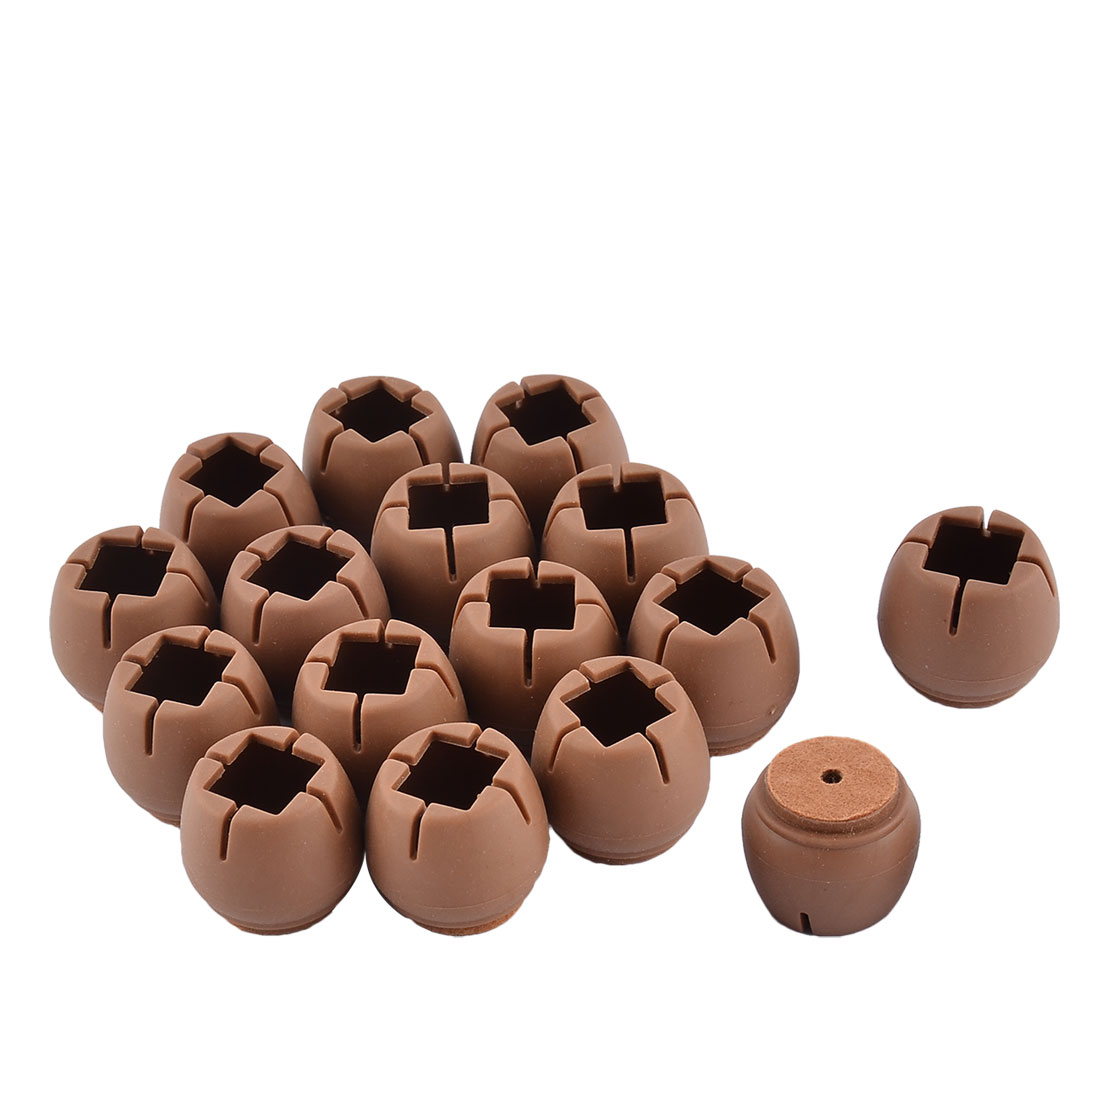 Silicone Flexible Round Furniture Leg Protective Cover Cap Coffee Color 3 x 2.7cm 16pcs